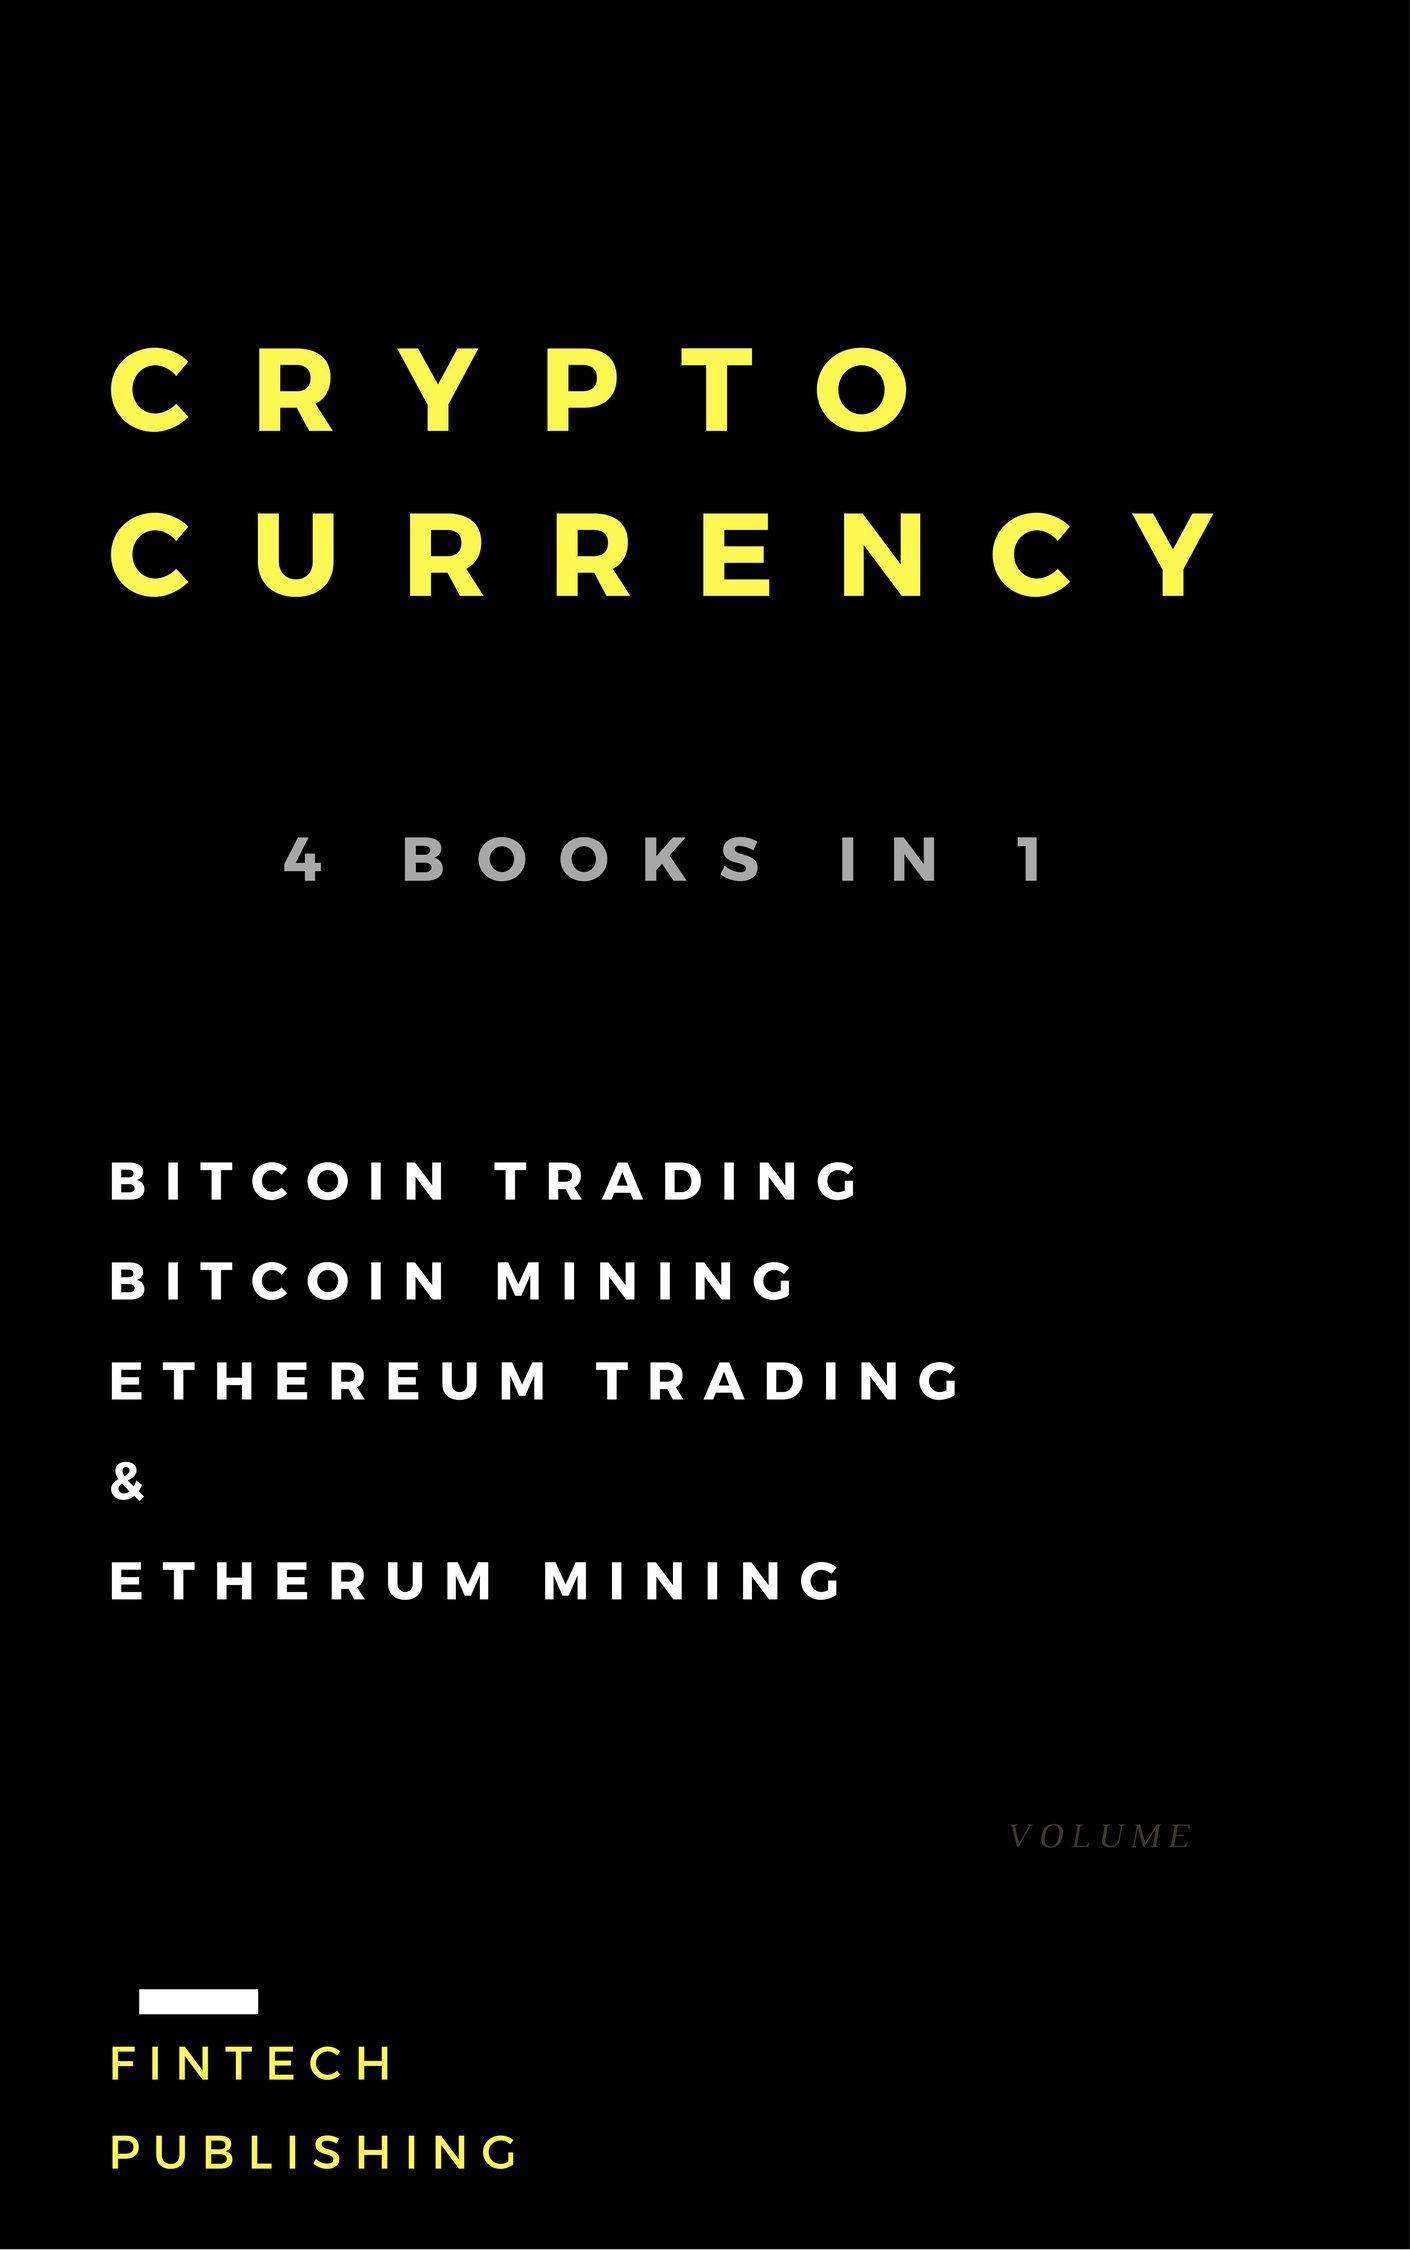 Cryptocurrency: 4 Books in 1 (Bitcoin Trading, Bitcoin Mining, Ethereum Trading & Etherum Mining)